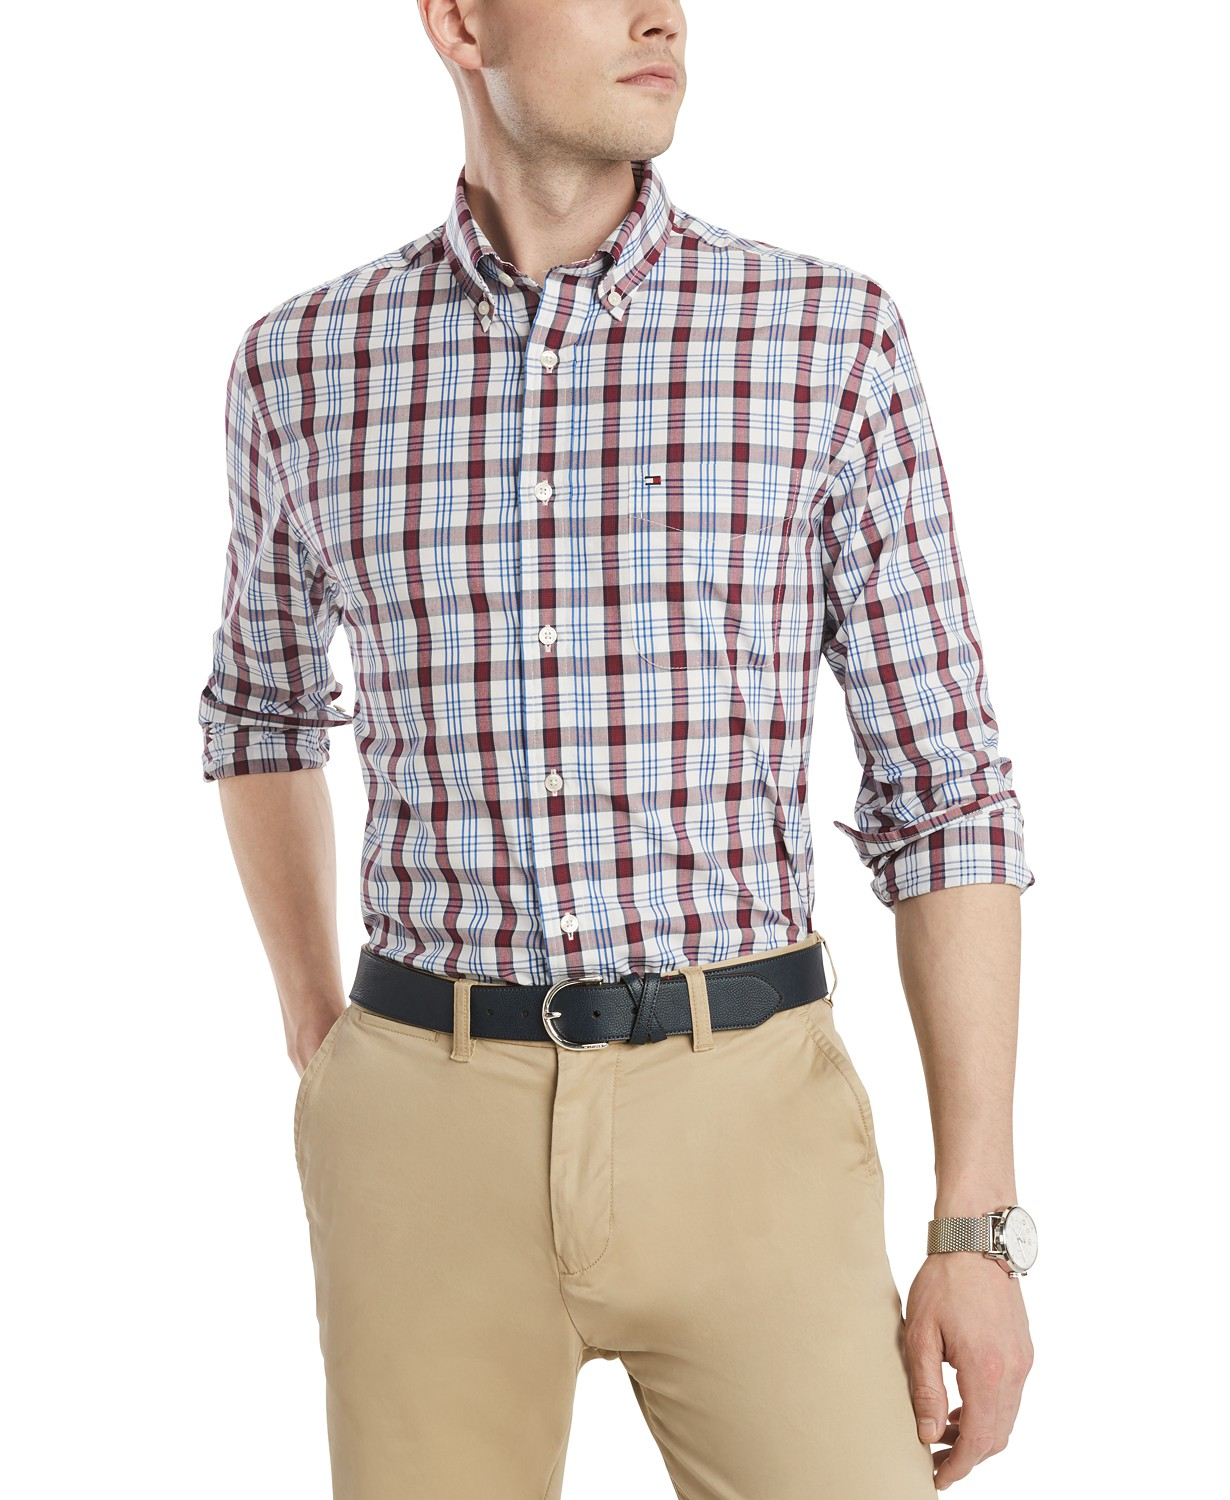 outfit at macy's -  shirt